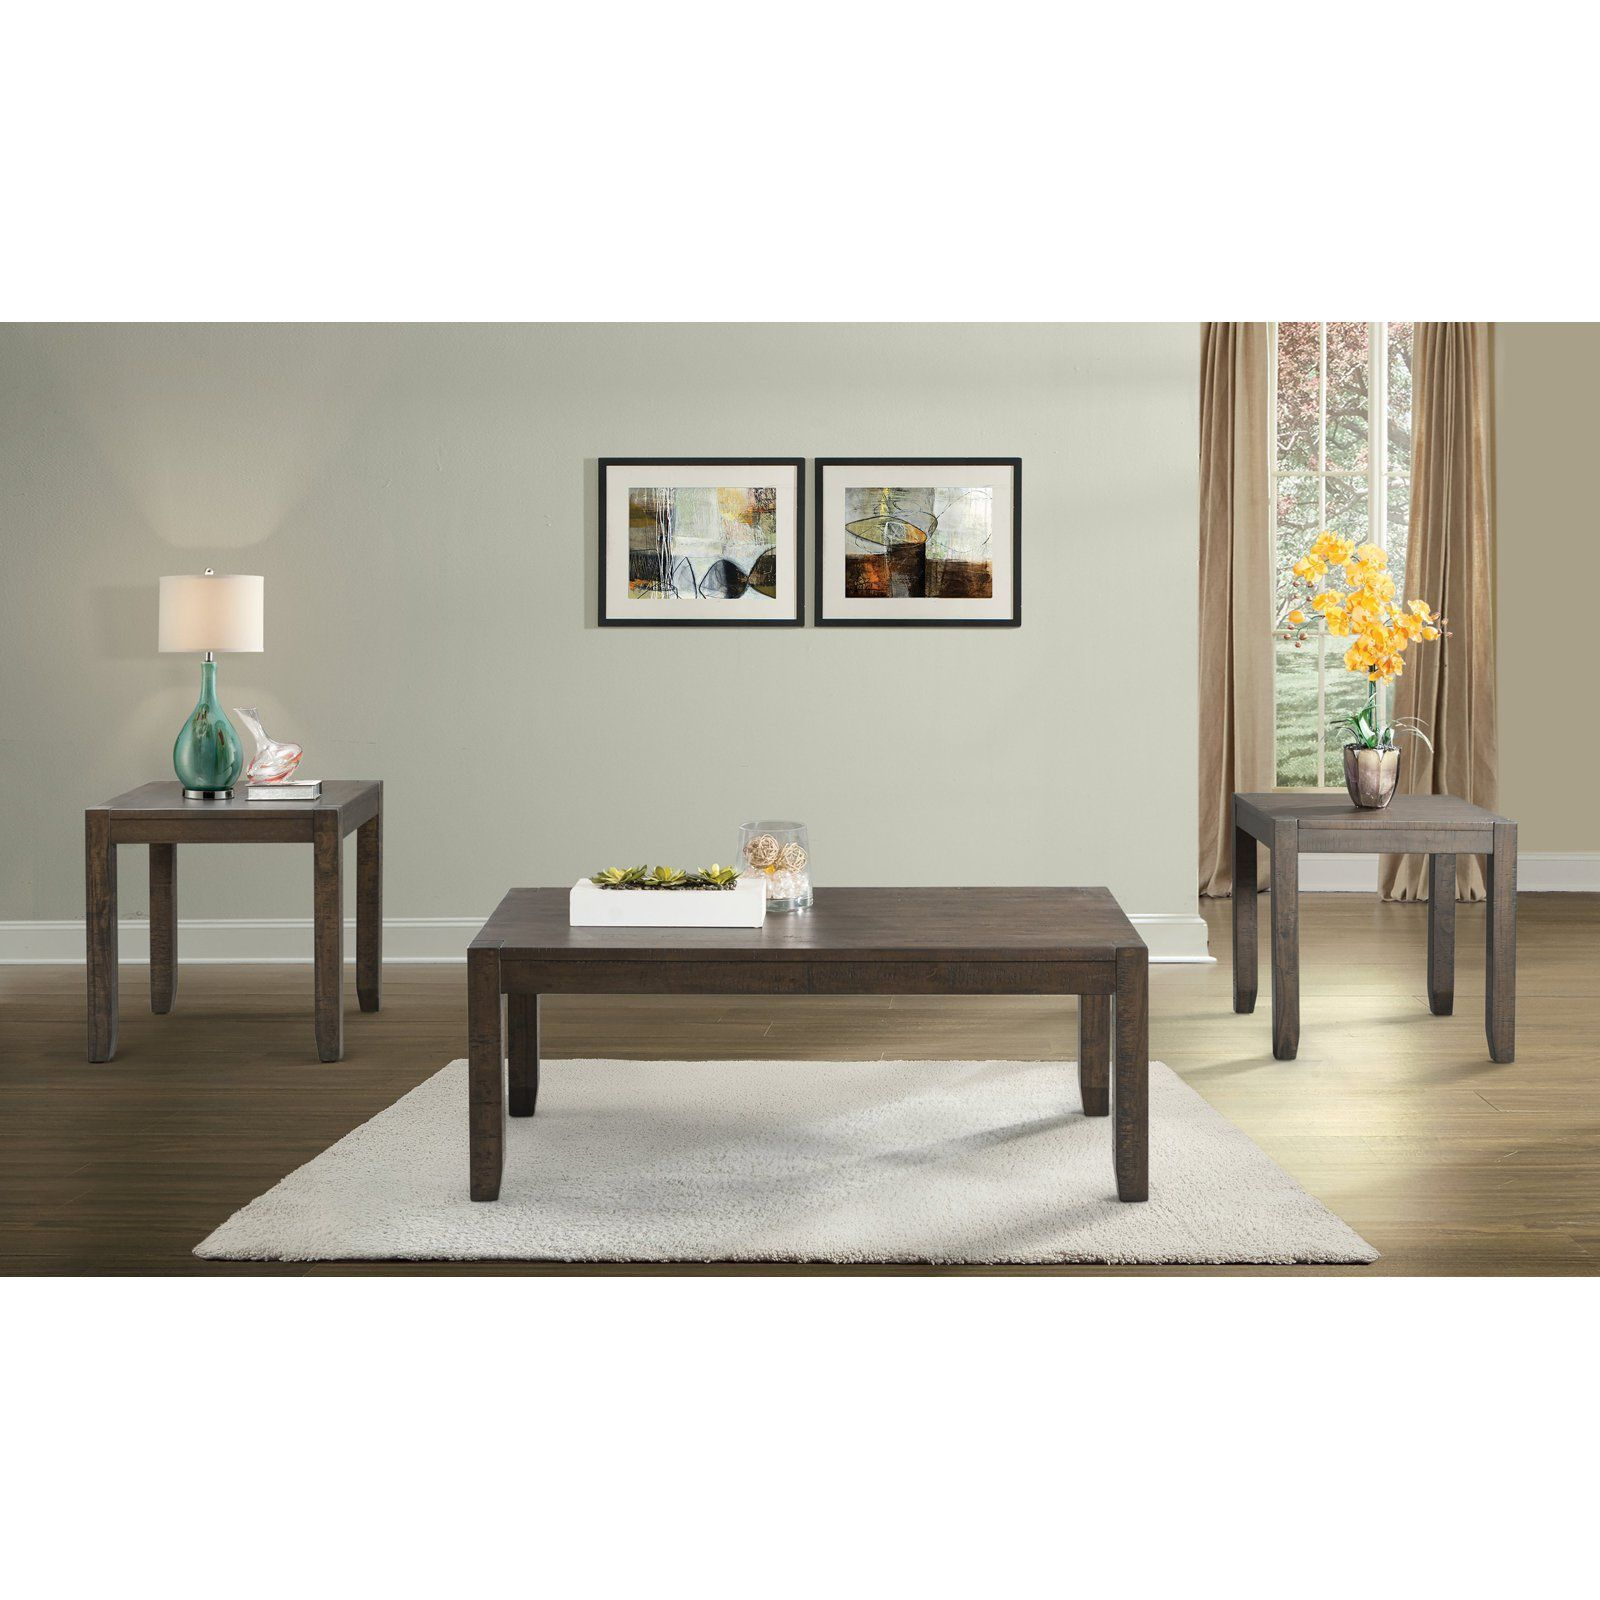 Picket House Furnishings Dex 3 Piece Occasional Table Set   Gray   TAD100OT